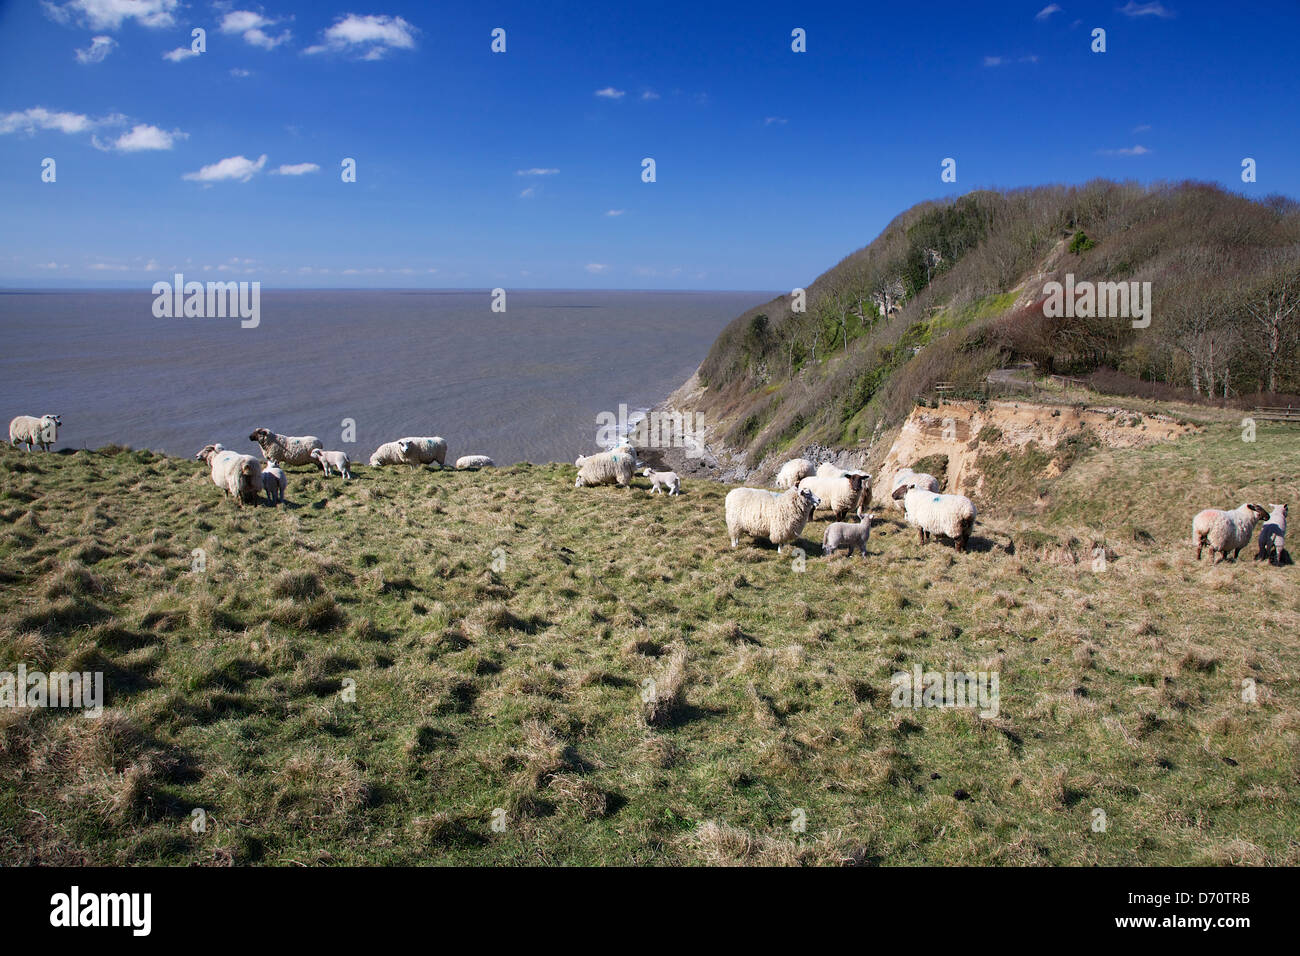 Ewes and lambs at Southerndown cliffs overlooking the Bristol Channel, South Wales, UK - Stock Image